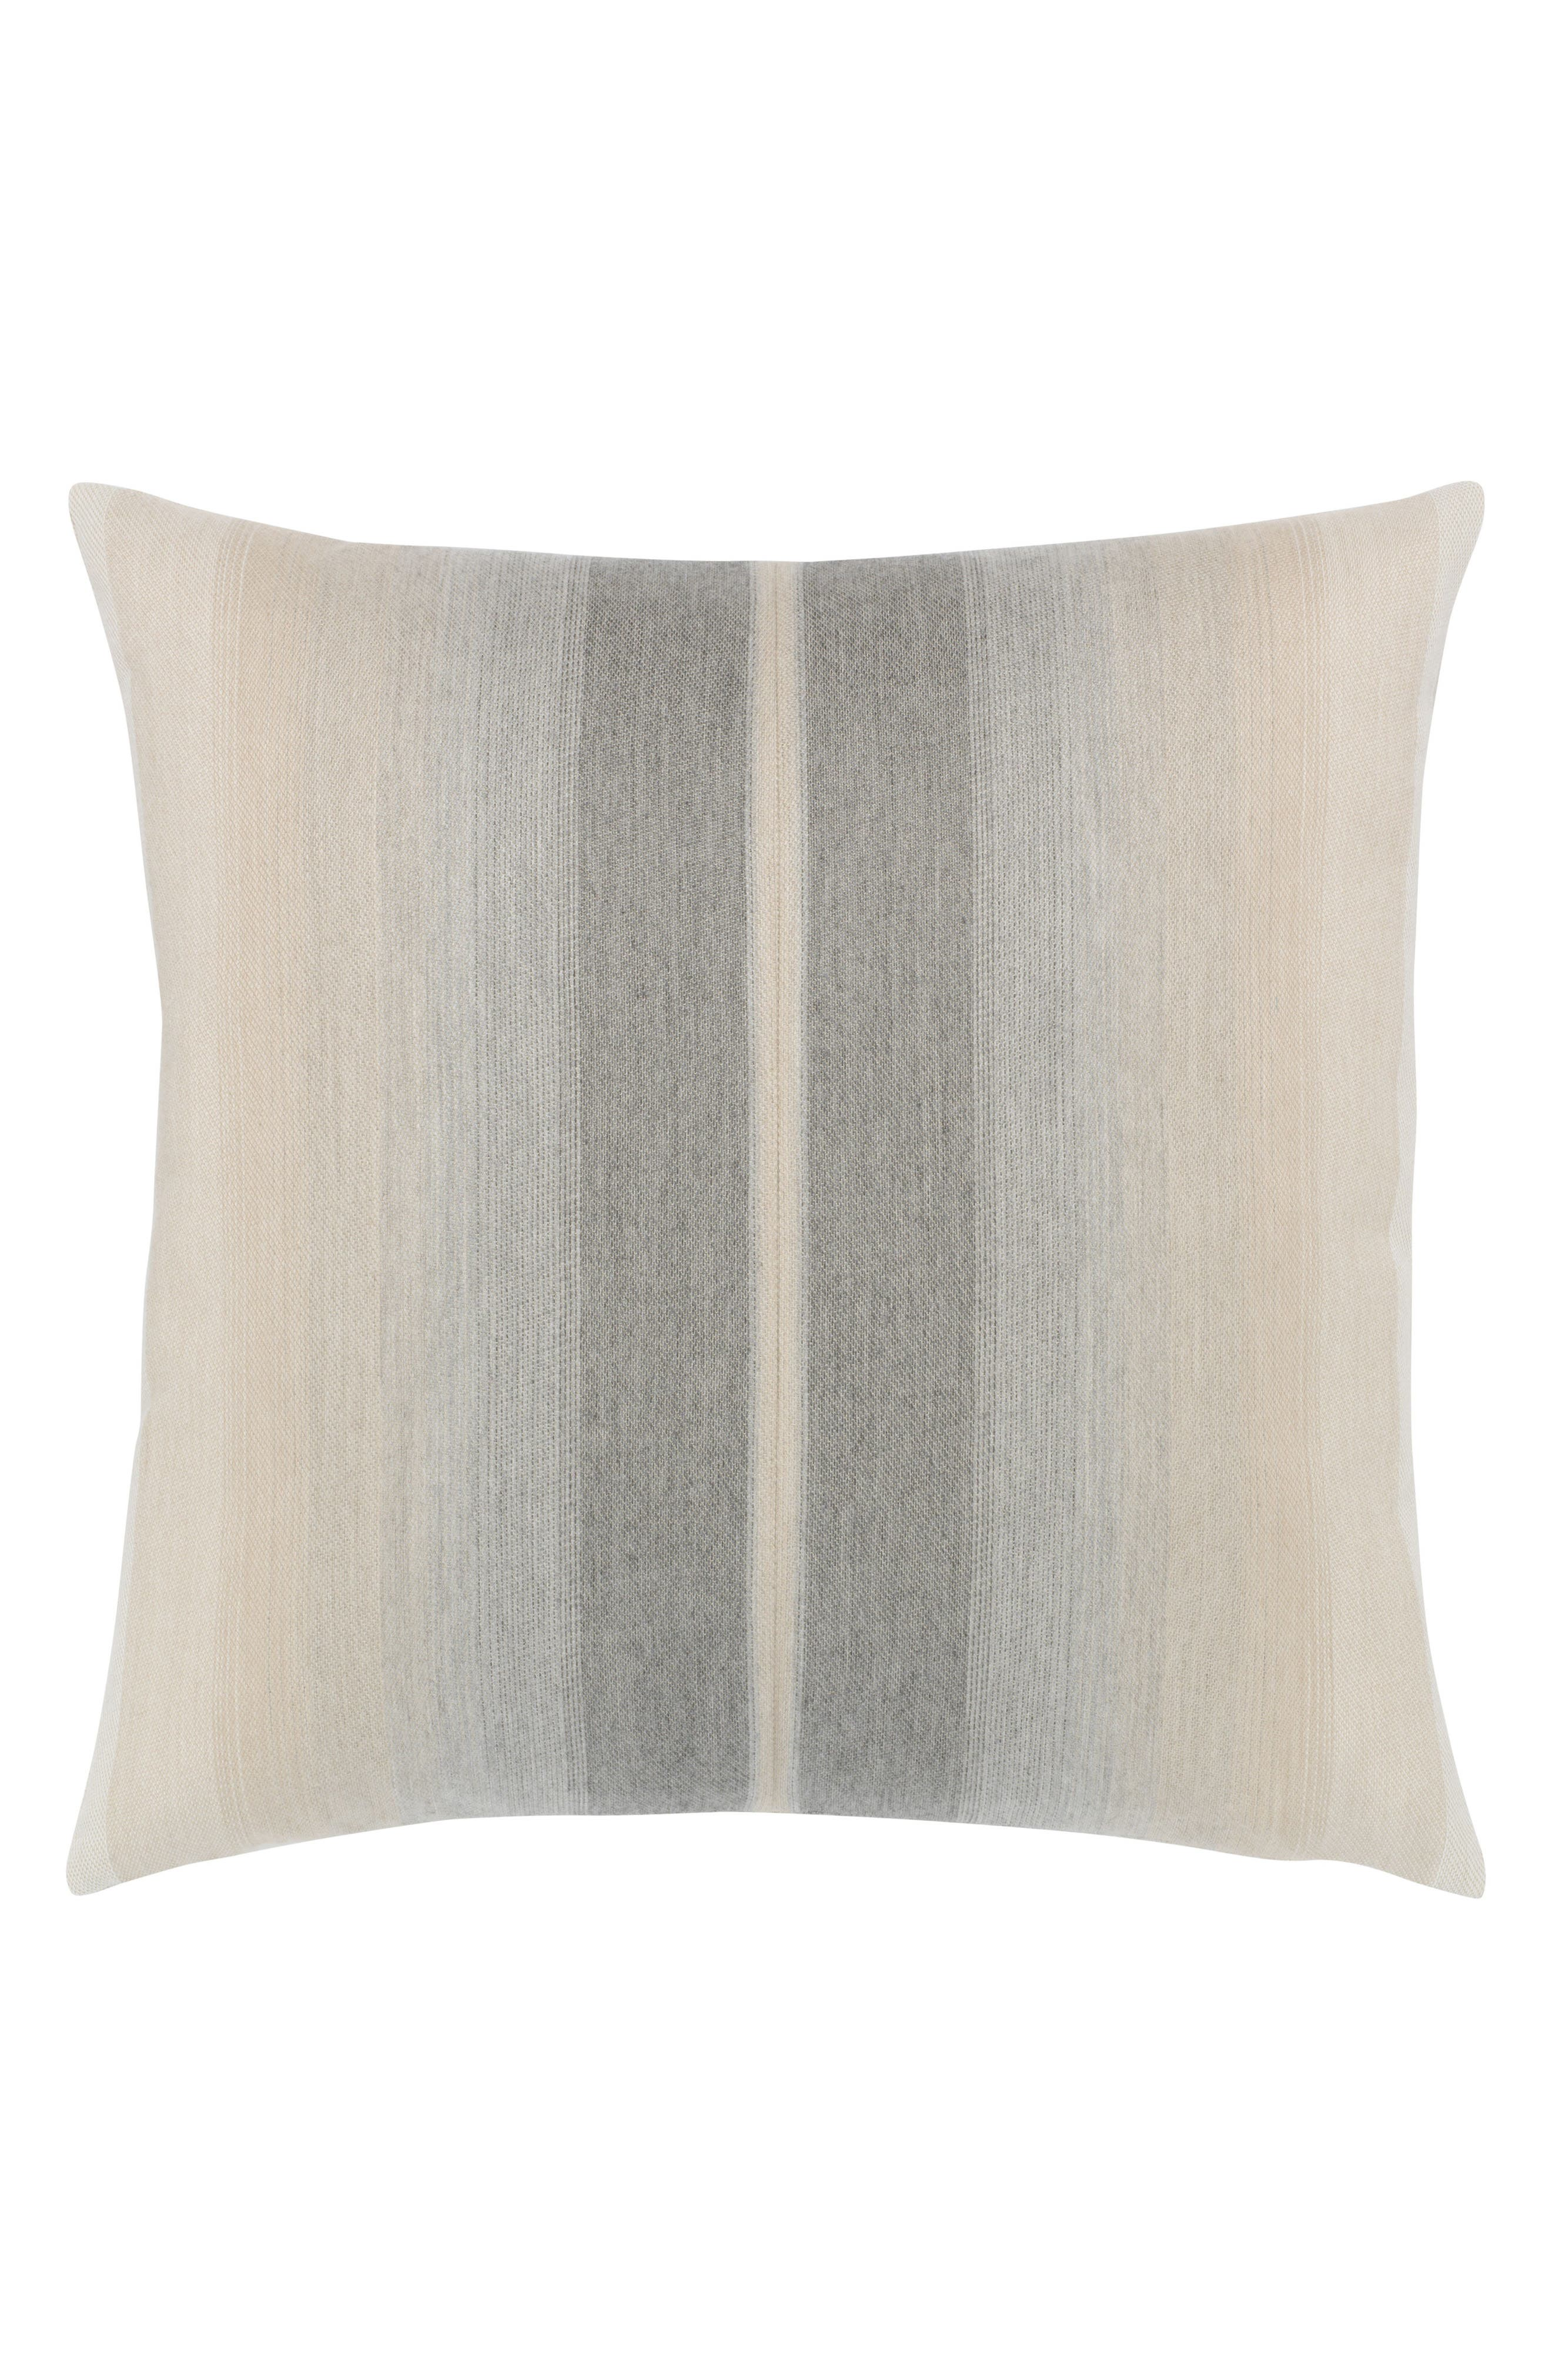 ELAINE SMITH,                             Ombré Grigio Indoor/Outdoor Accent Pillow,                             Main thumbnail 1, color,                             020